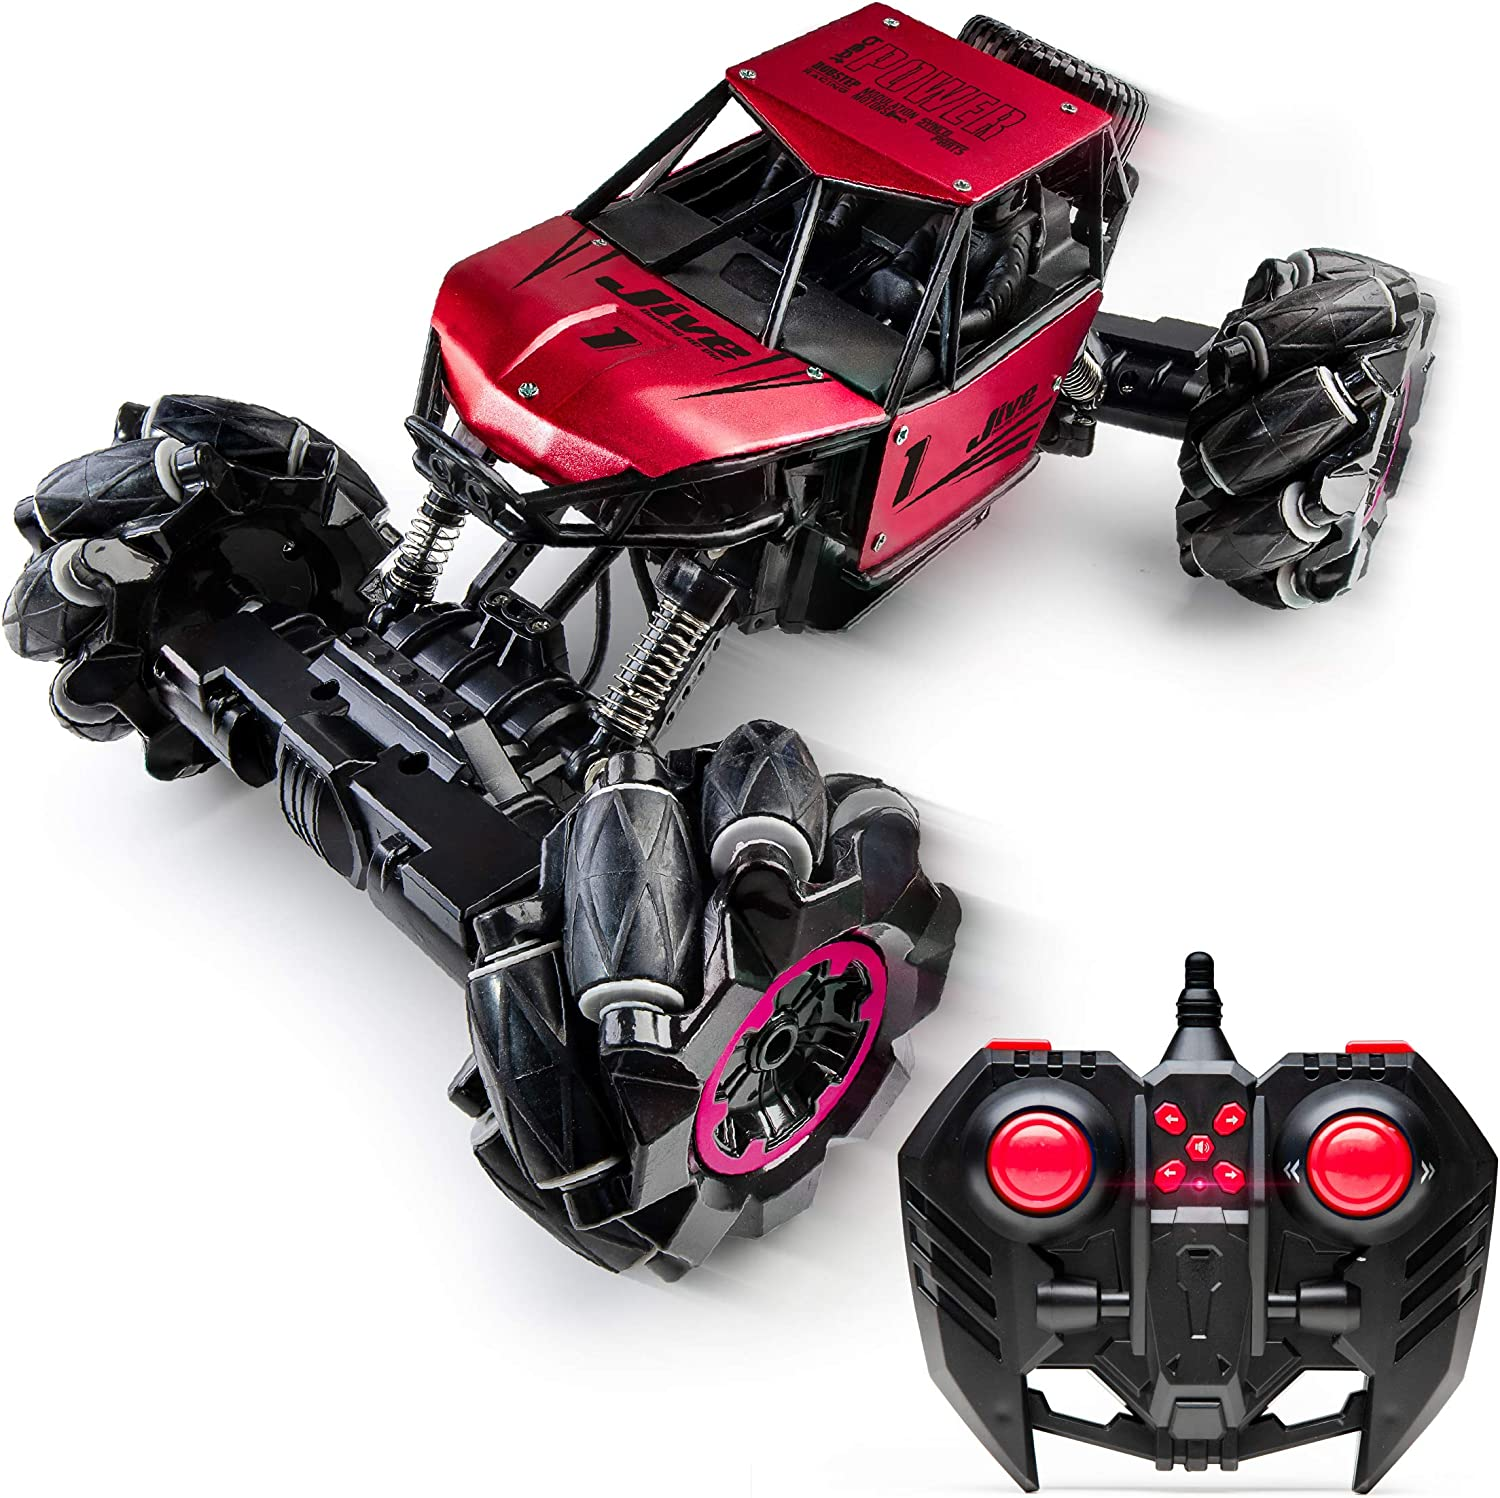 Power Your Fun Jive Dancing Car - Remote Control Monster Truck, RC Crawler 4x4, Stunt Cars for Kids, Red